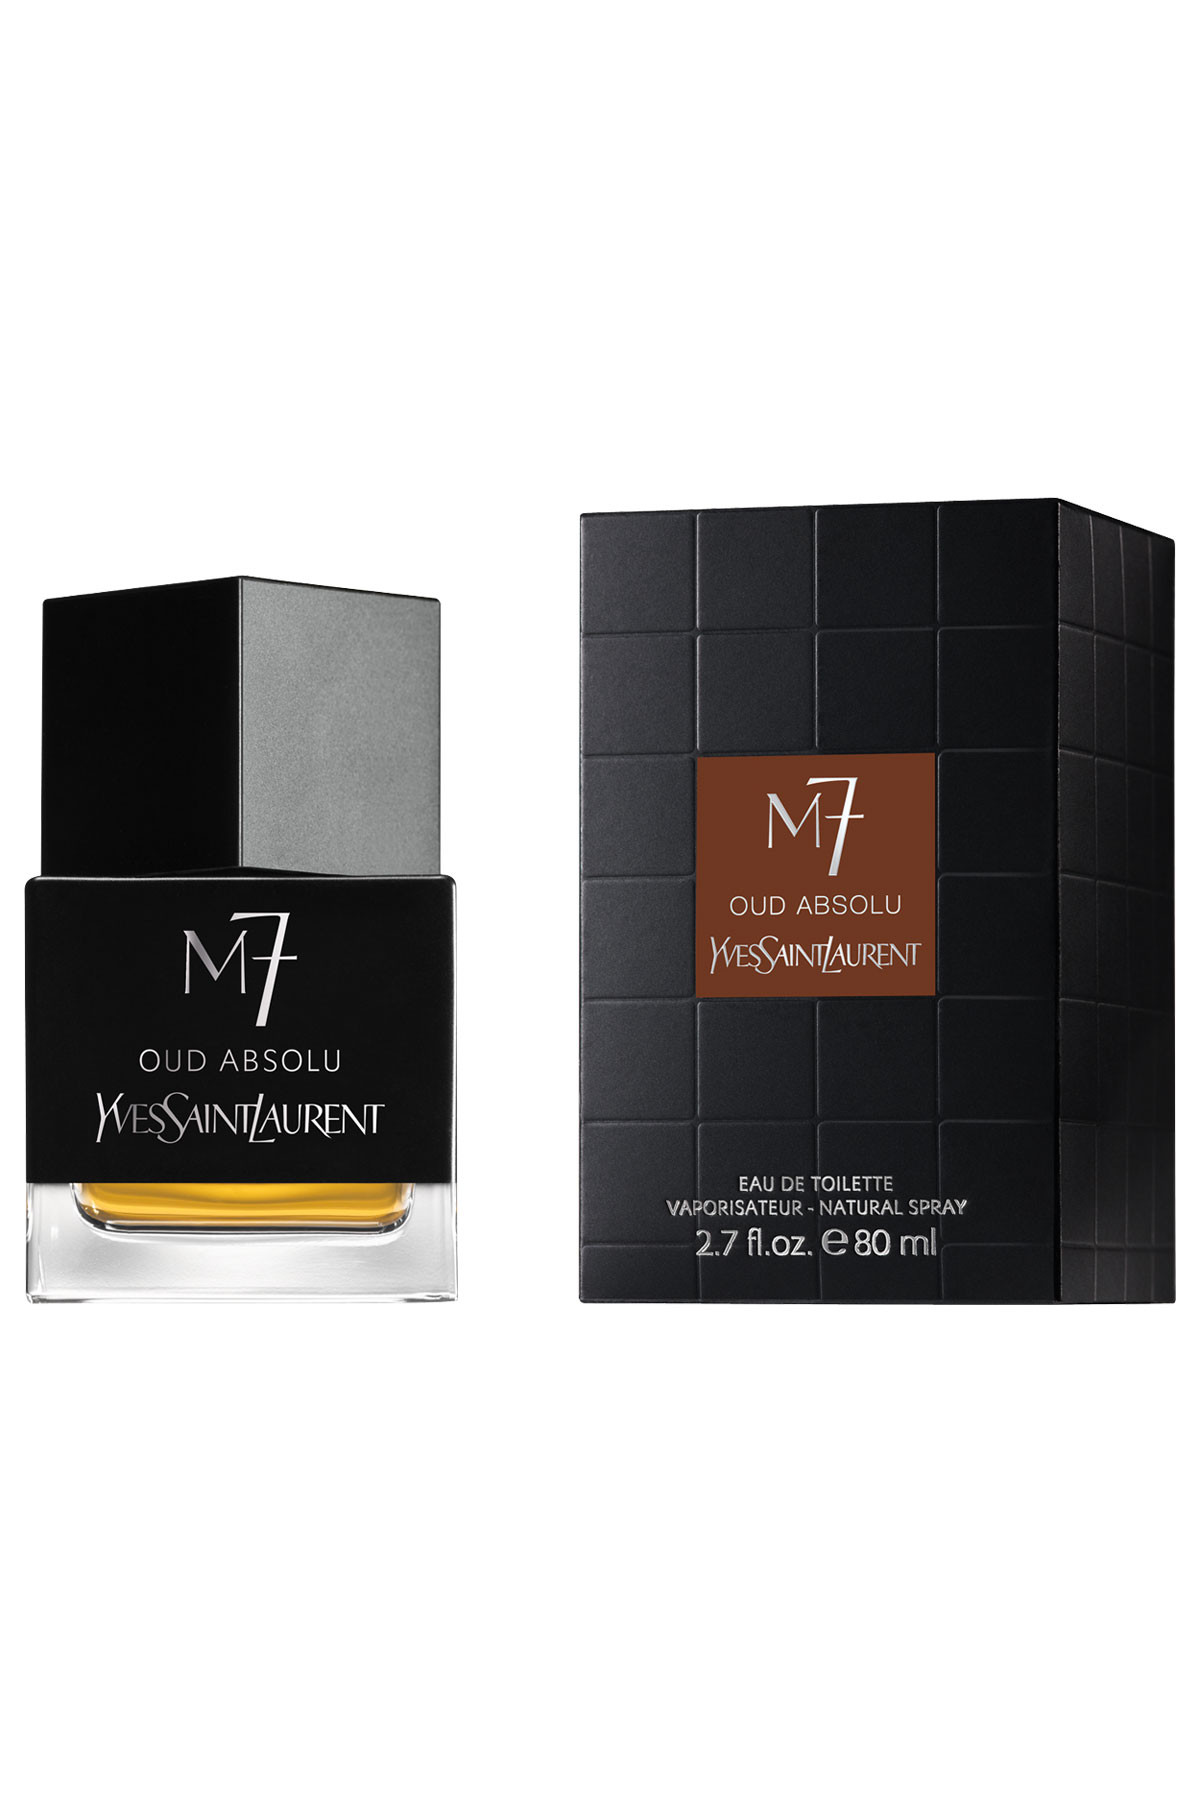 eau de toilette yves saint laurent la collection m7 oud absolu yves saint laurent la collection. Black Bedroom Furniture Sets. Home Design Ideas